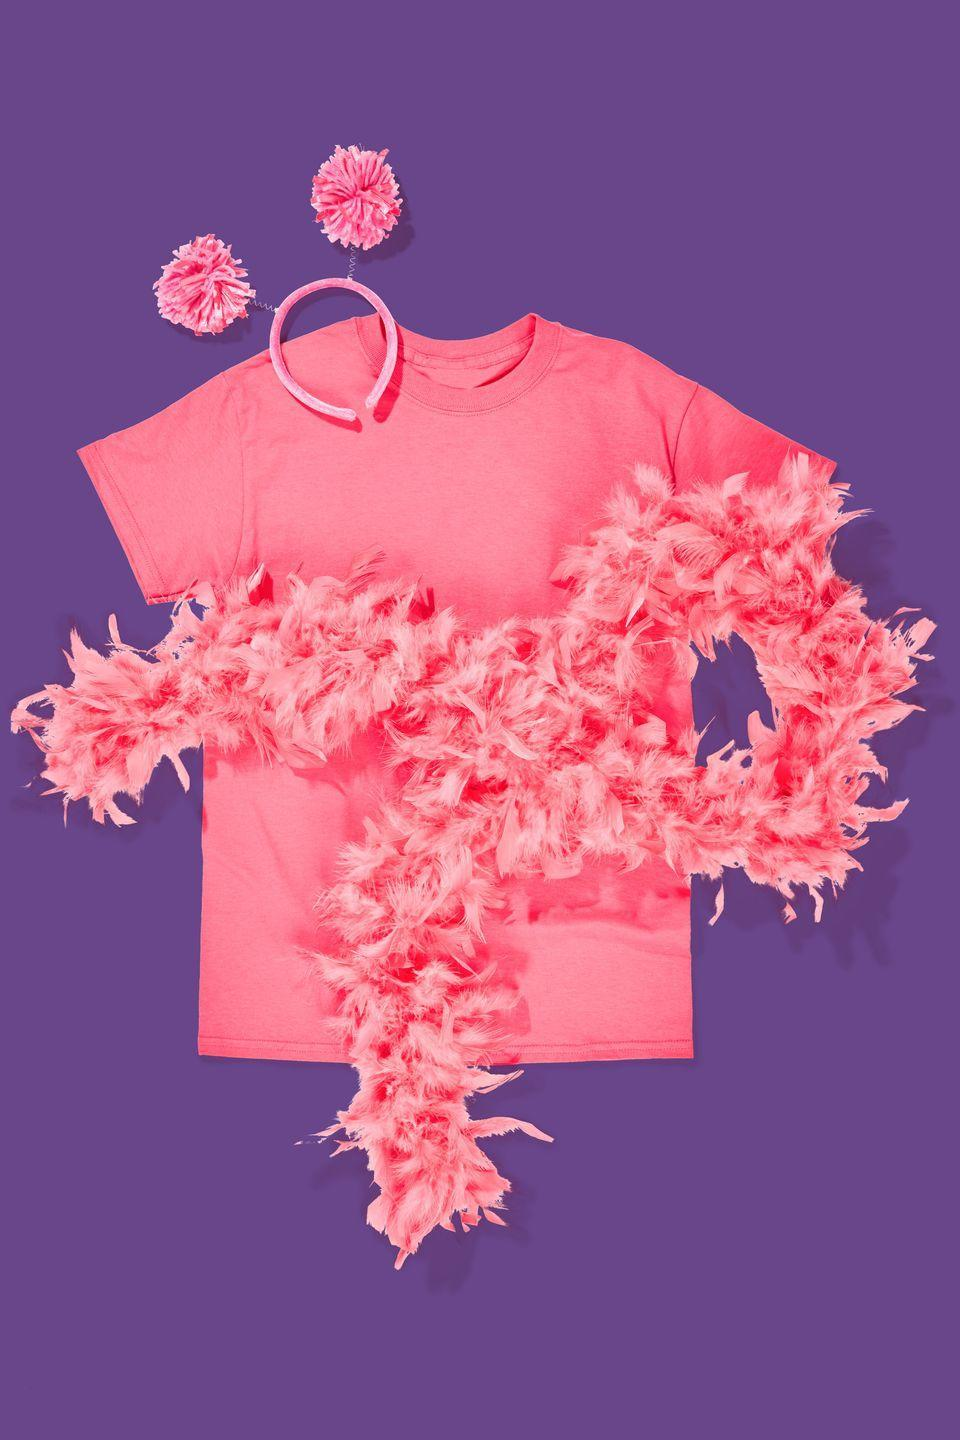 """<p>Grab a pink t-shirt, feather boa, and pom-pom <span class=""""redactor-unlink"""">headband, then make sure to keep the LOLs going all night long. </span></p><p><strong><a class=""""link rapid-noclick-resp"""" href=""""https://www.amazon.com/Lux-Accessories-Rainbow-Tinsel-Headband/dp/B07B8KSYLW/?tag=syn-yahoo-20&ascsubtag=%5Bartid%7C10070.g.490%5Bsrc%7Cyahoo-us"""" rel=""""nofollow noopener"""" target=""""_blank"""" data-ylk=""""slk:SHOP POM-POM HEADBANDS"""">SHOP POM-POM HEADBANDS</a><br></strong></p>"""